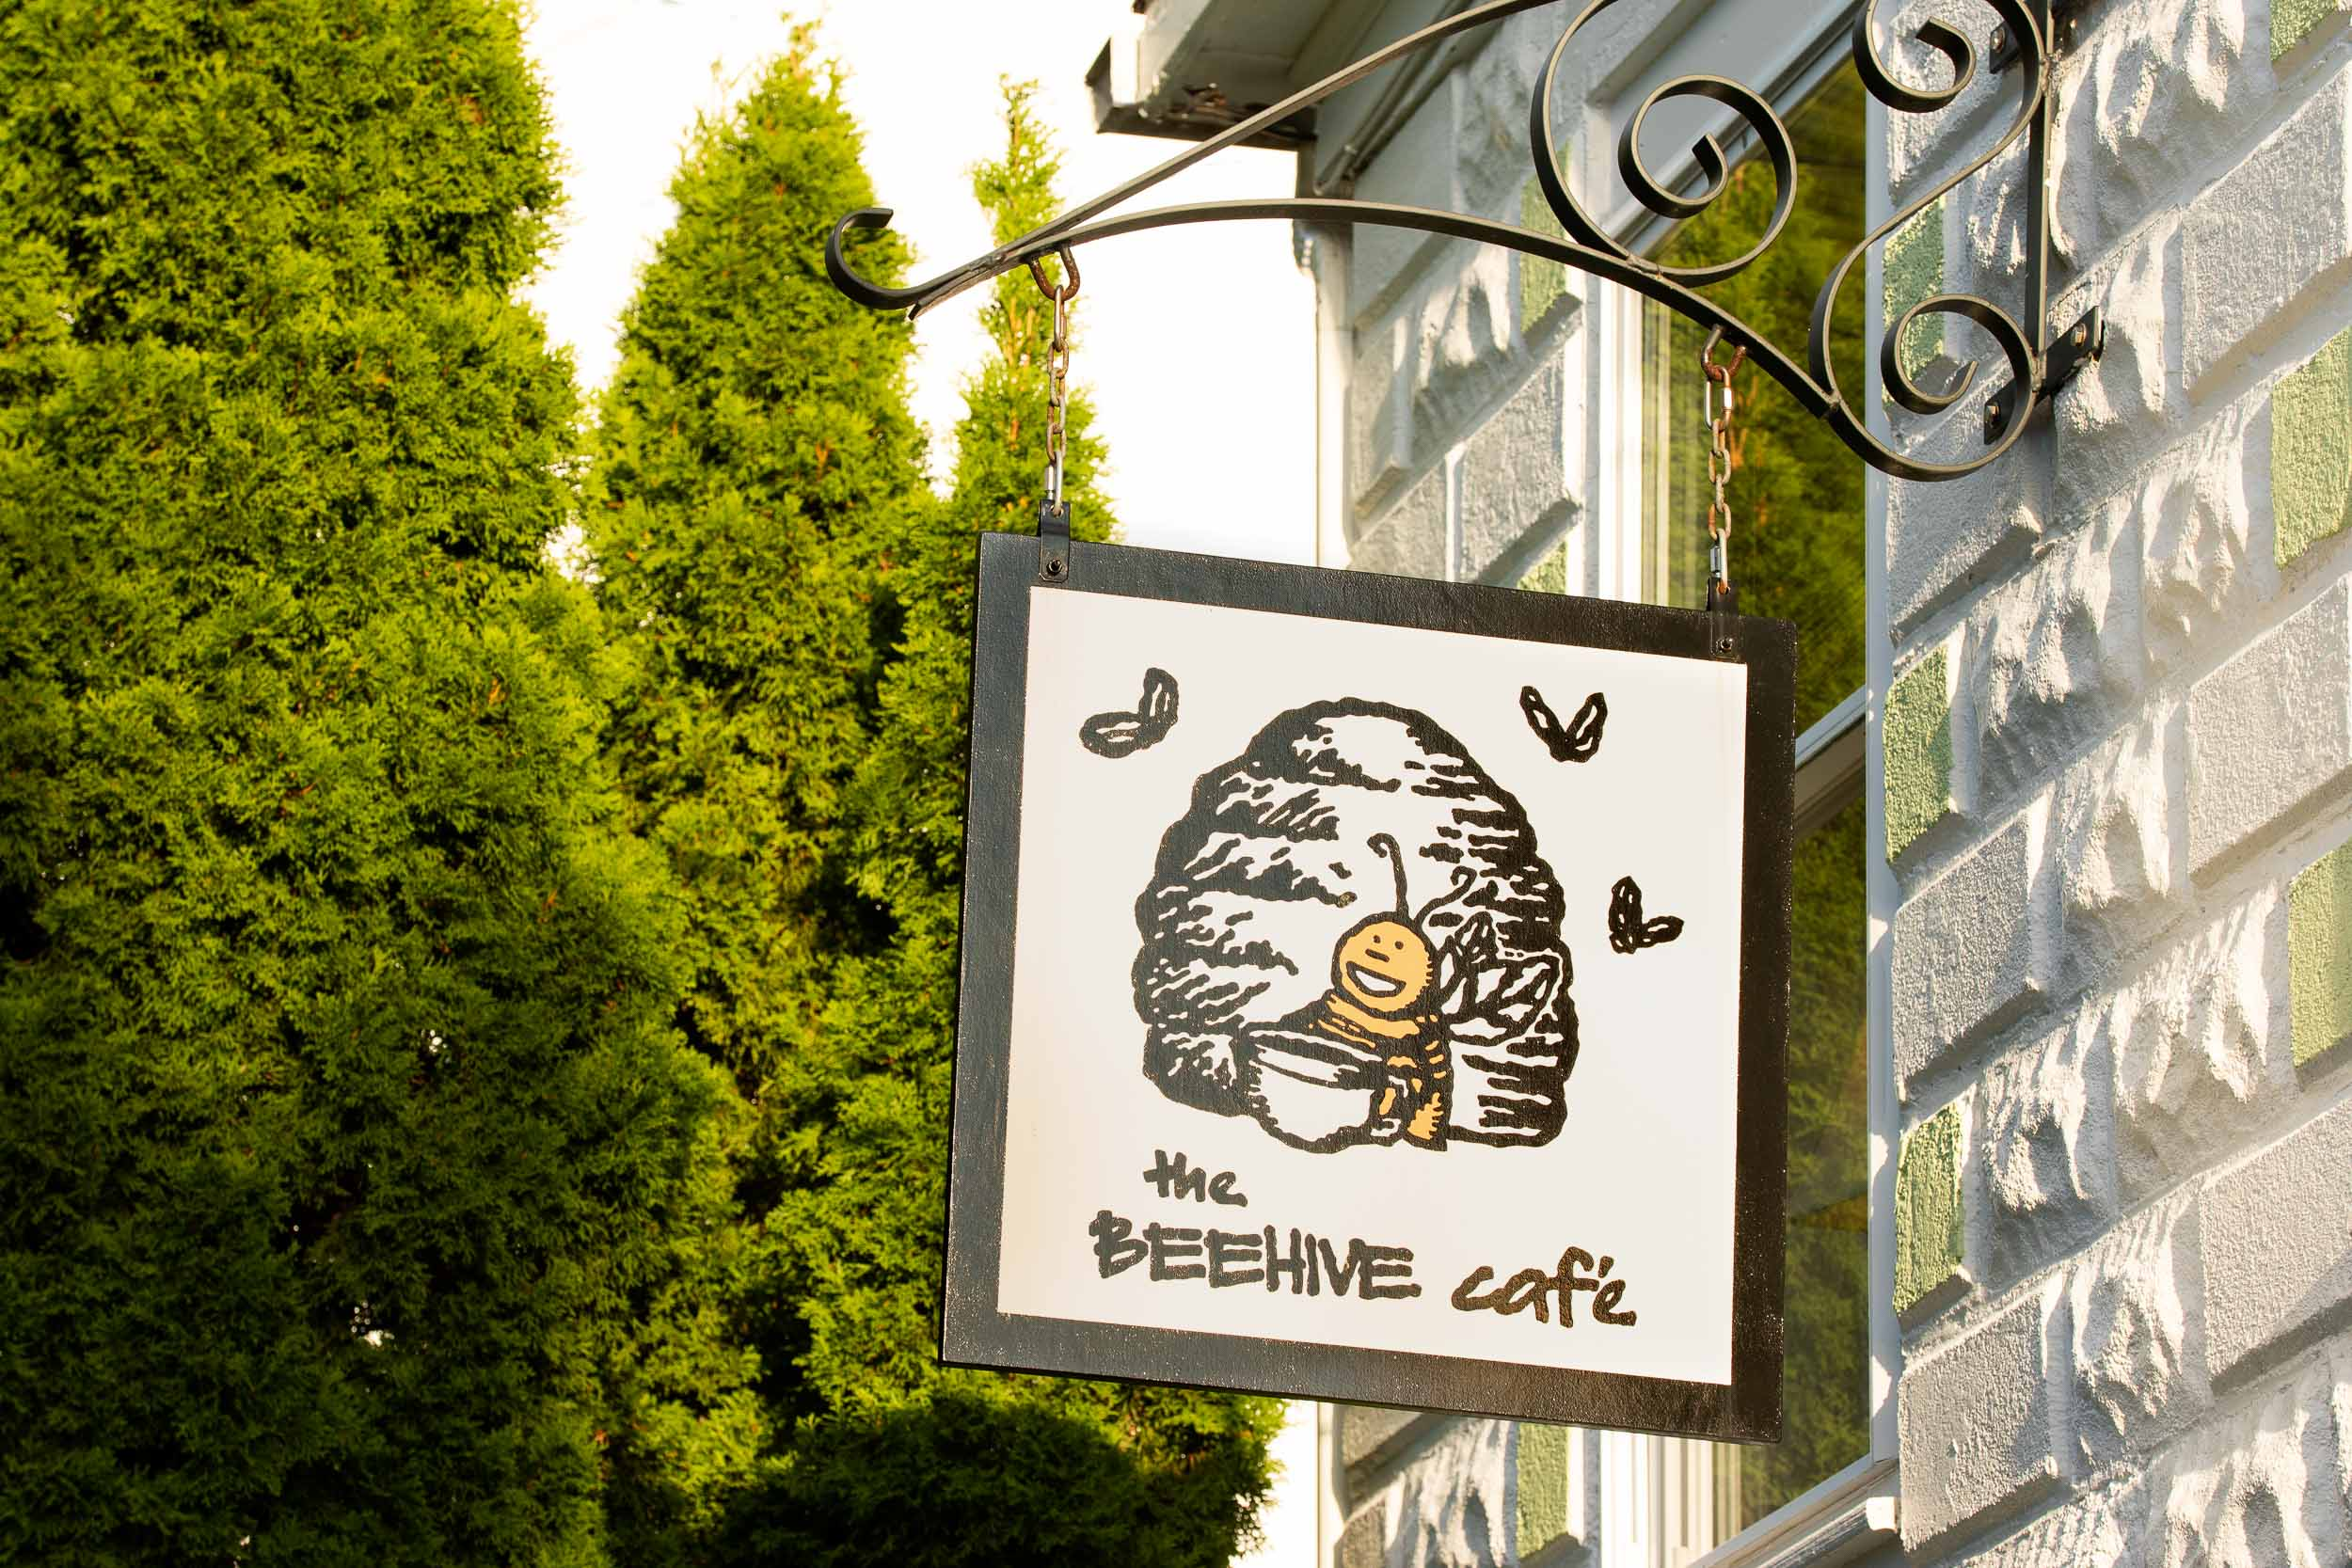 The Beehive Cafe sign